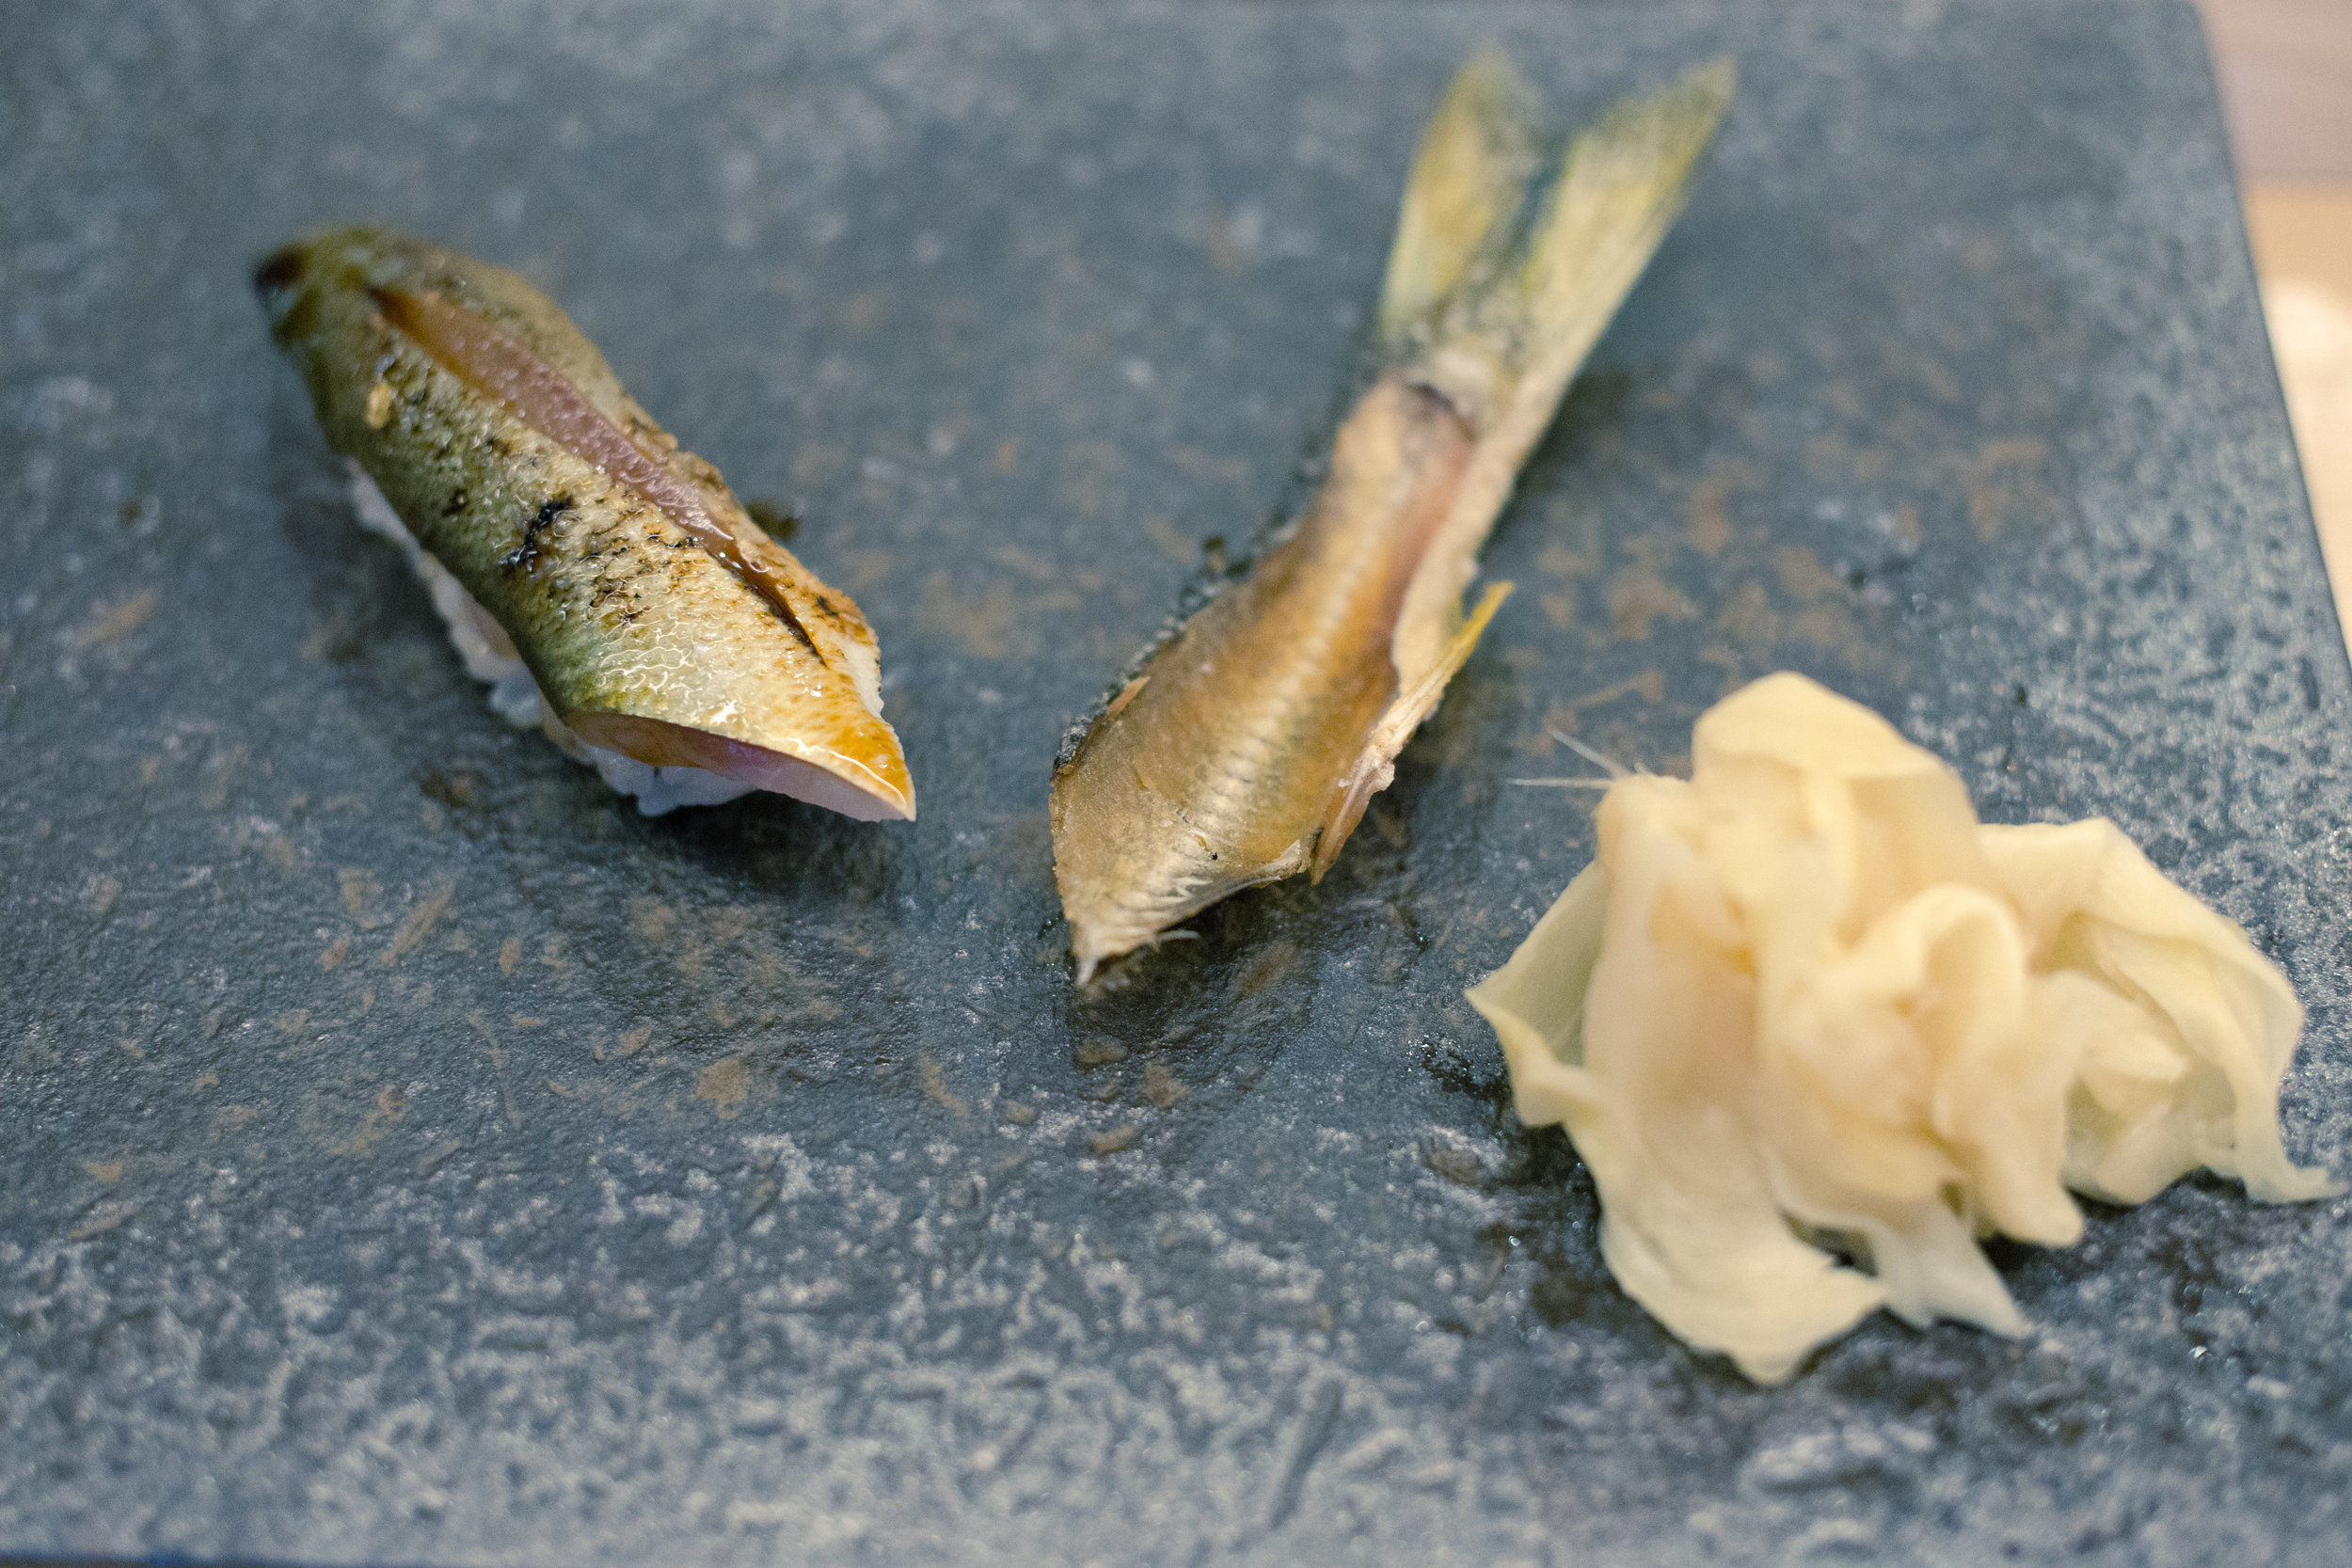 The nigiri is not your average nigiri. The amount of rice is minimized so you can truly taste the fish.